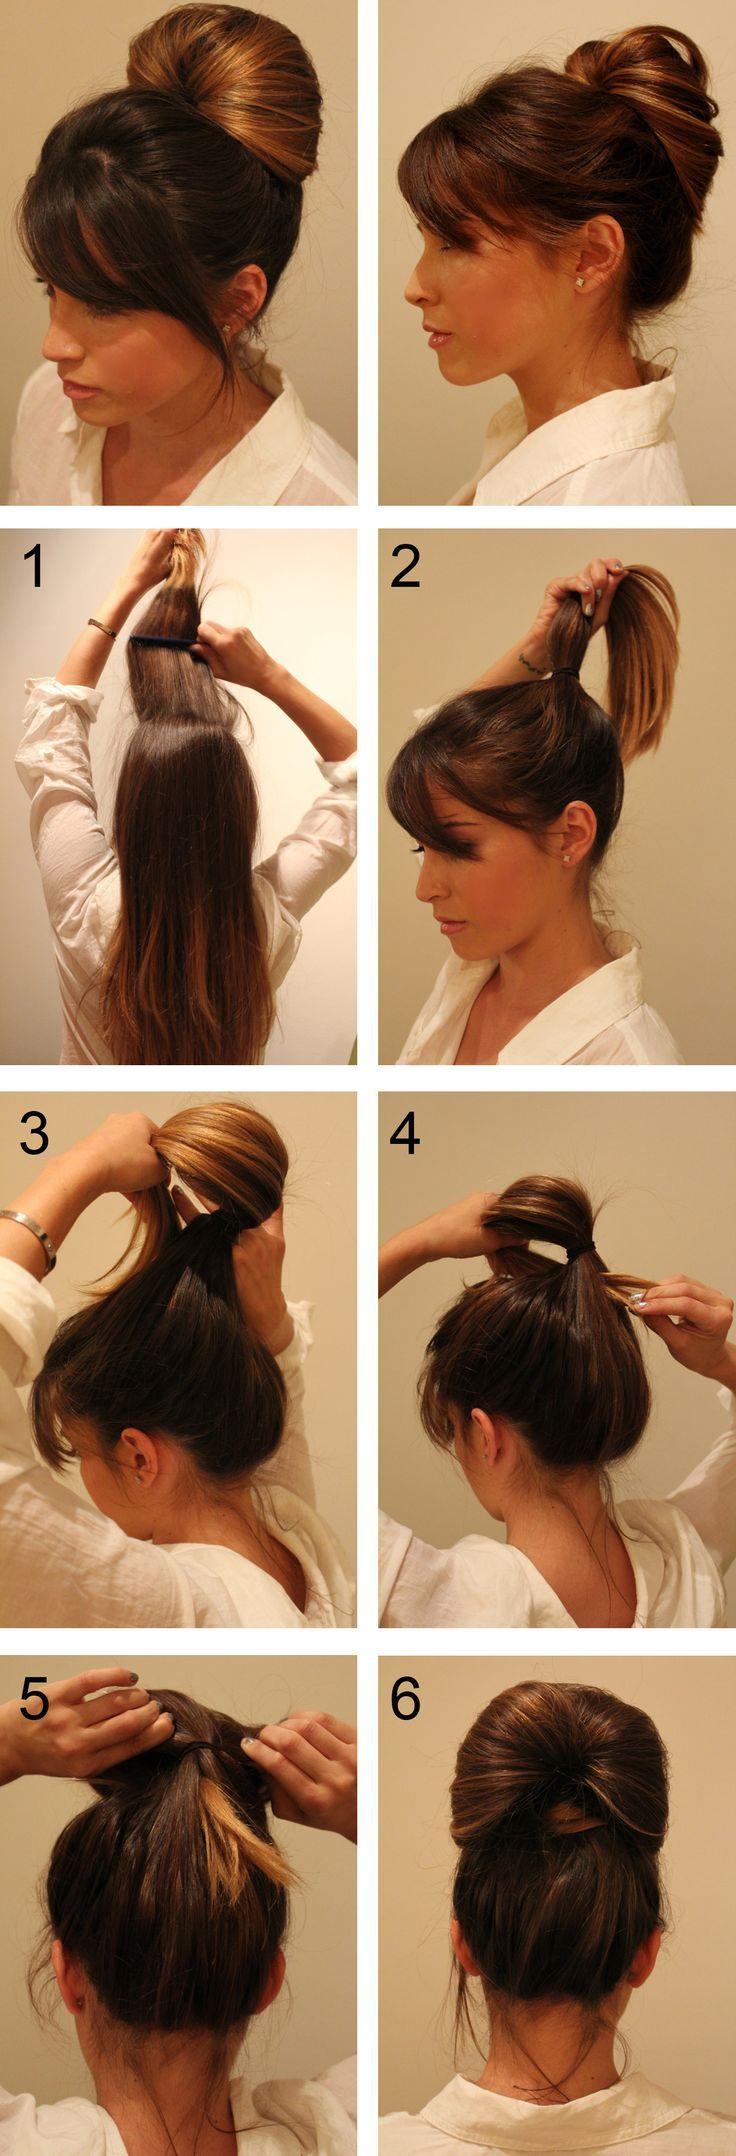 Superb 1000 Ideas About Lazy Day Hairstyles On Pinterest Full Ponytail Short Hairstyles For Black Women Fulllsitofus